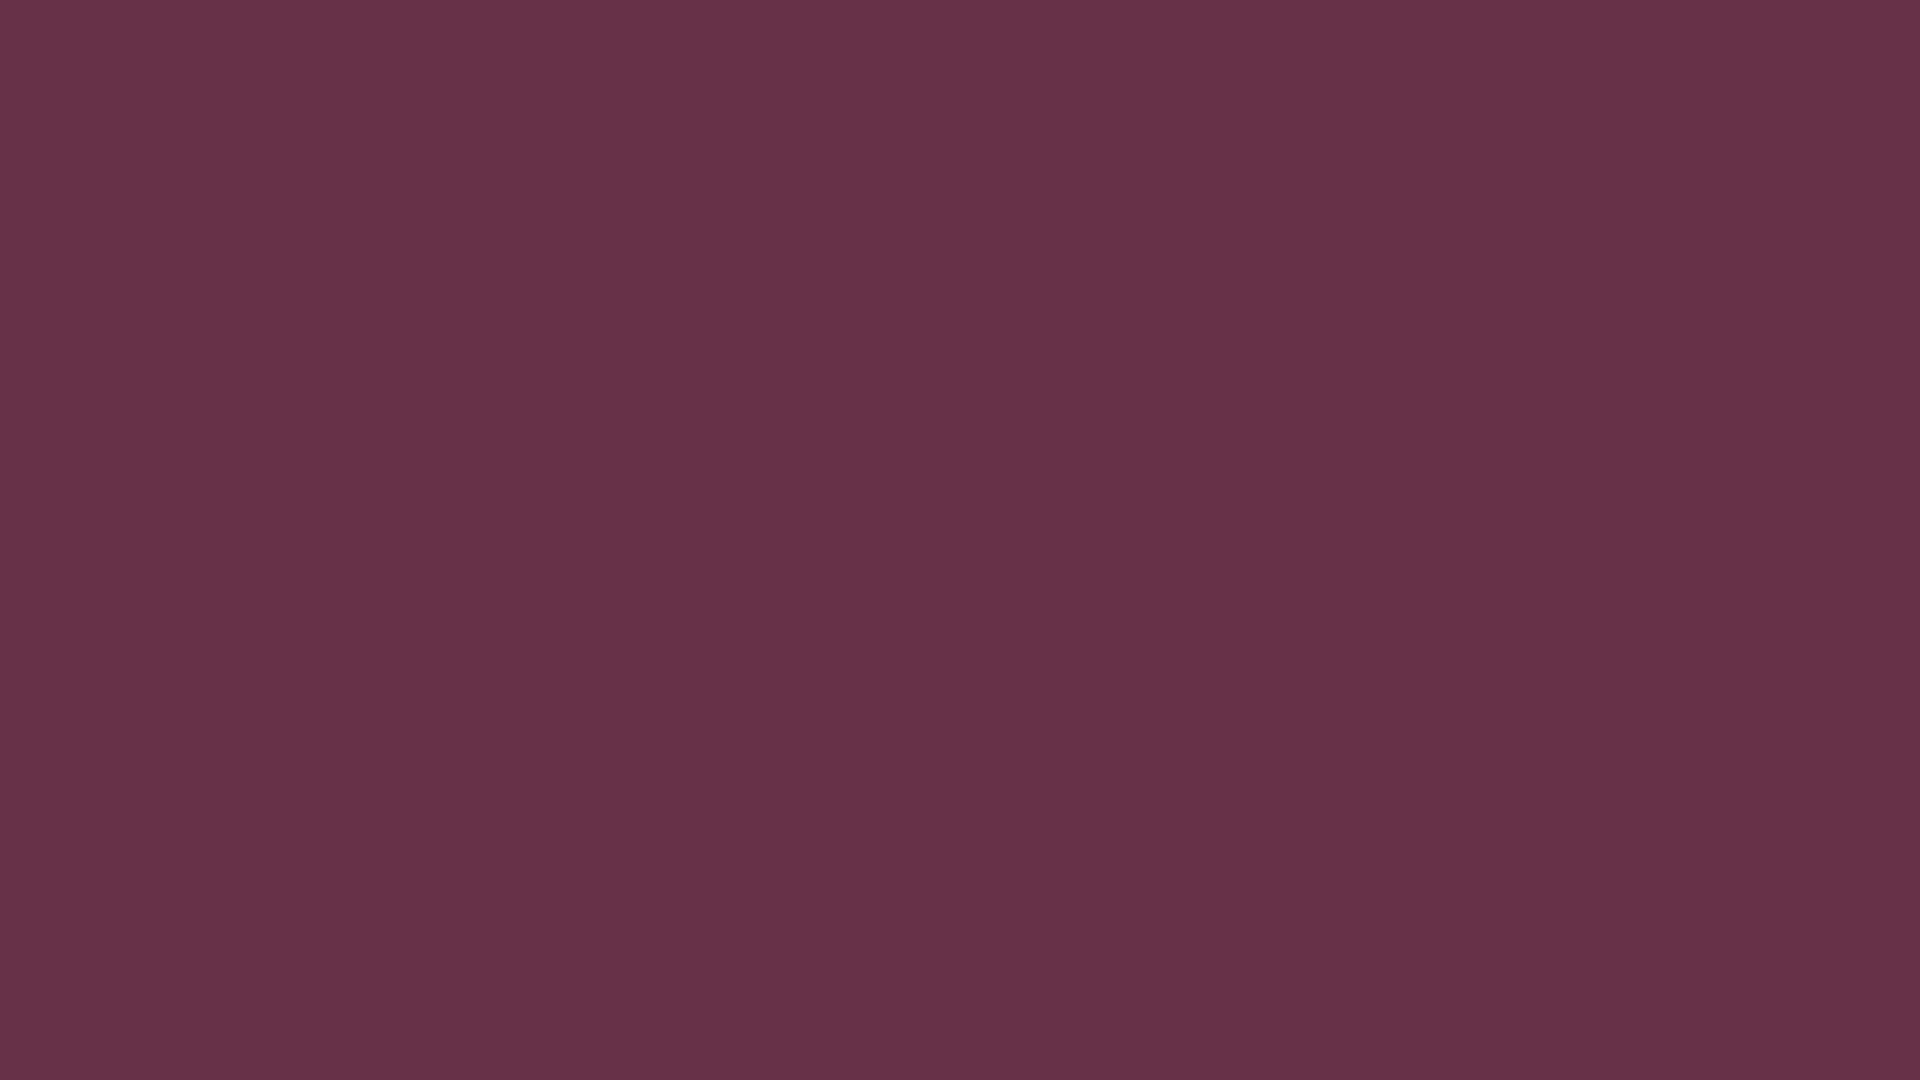 1920x1080 Old Mauve Solid Color Background